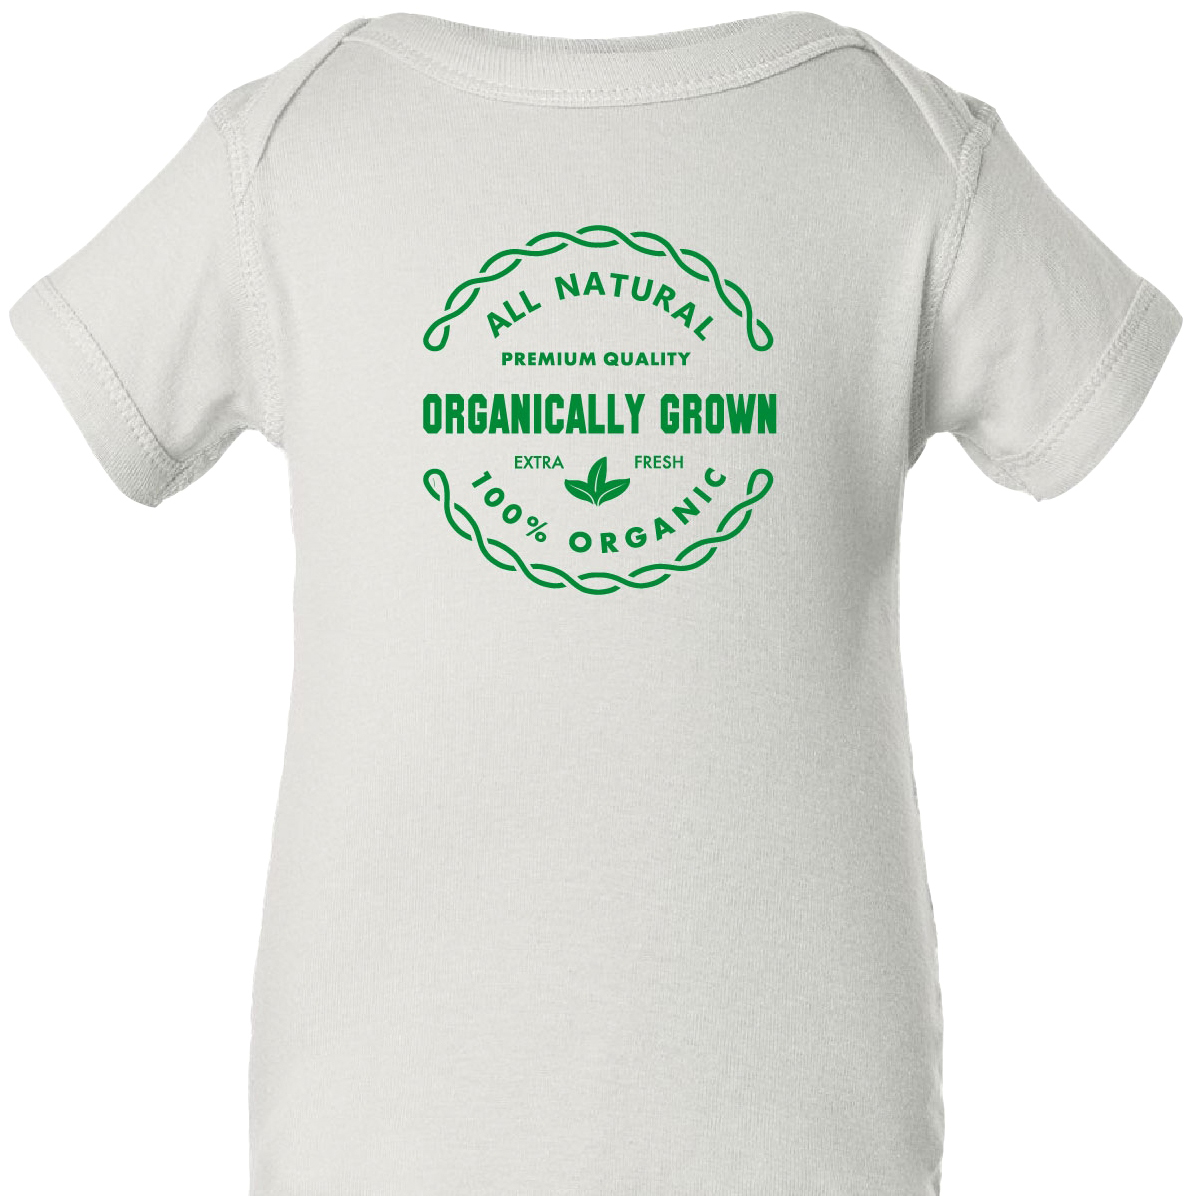 Find great deals on eBay for organically grown clothing. Shop with confidence.